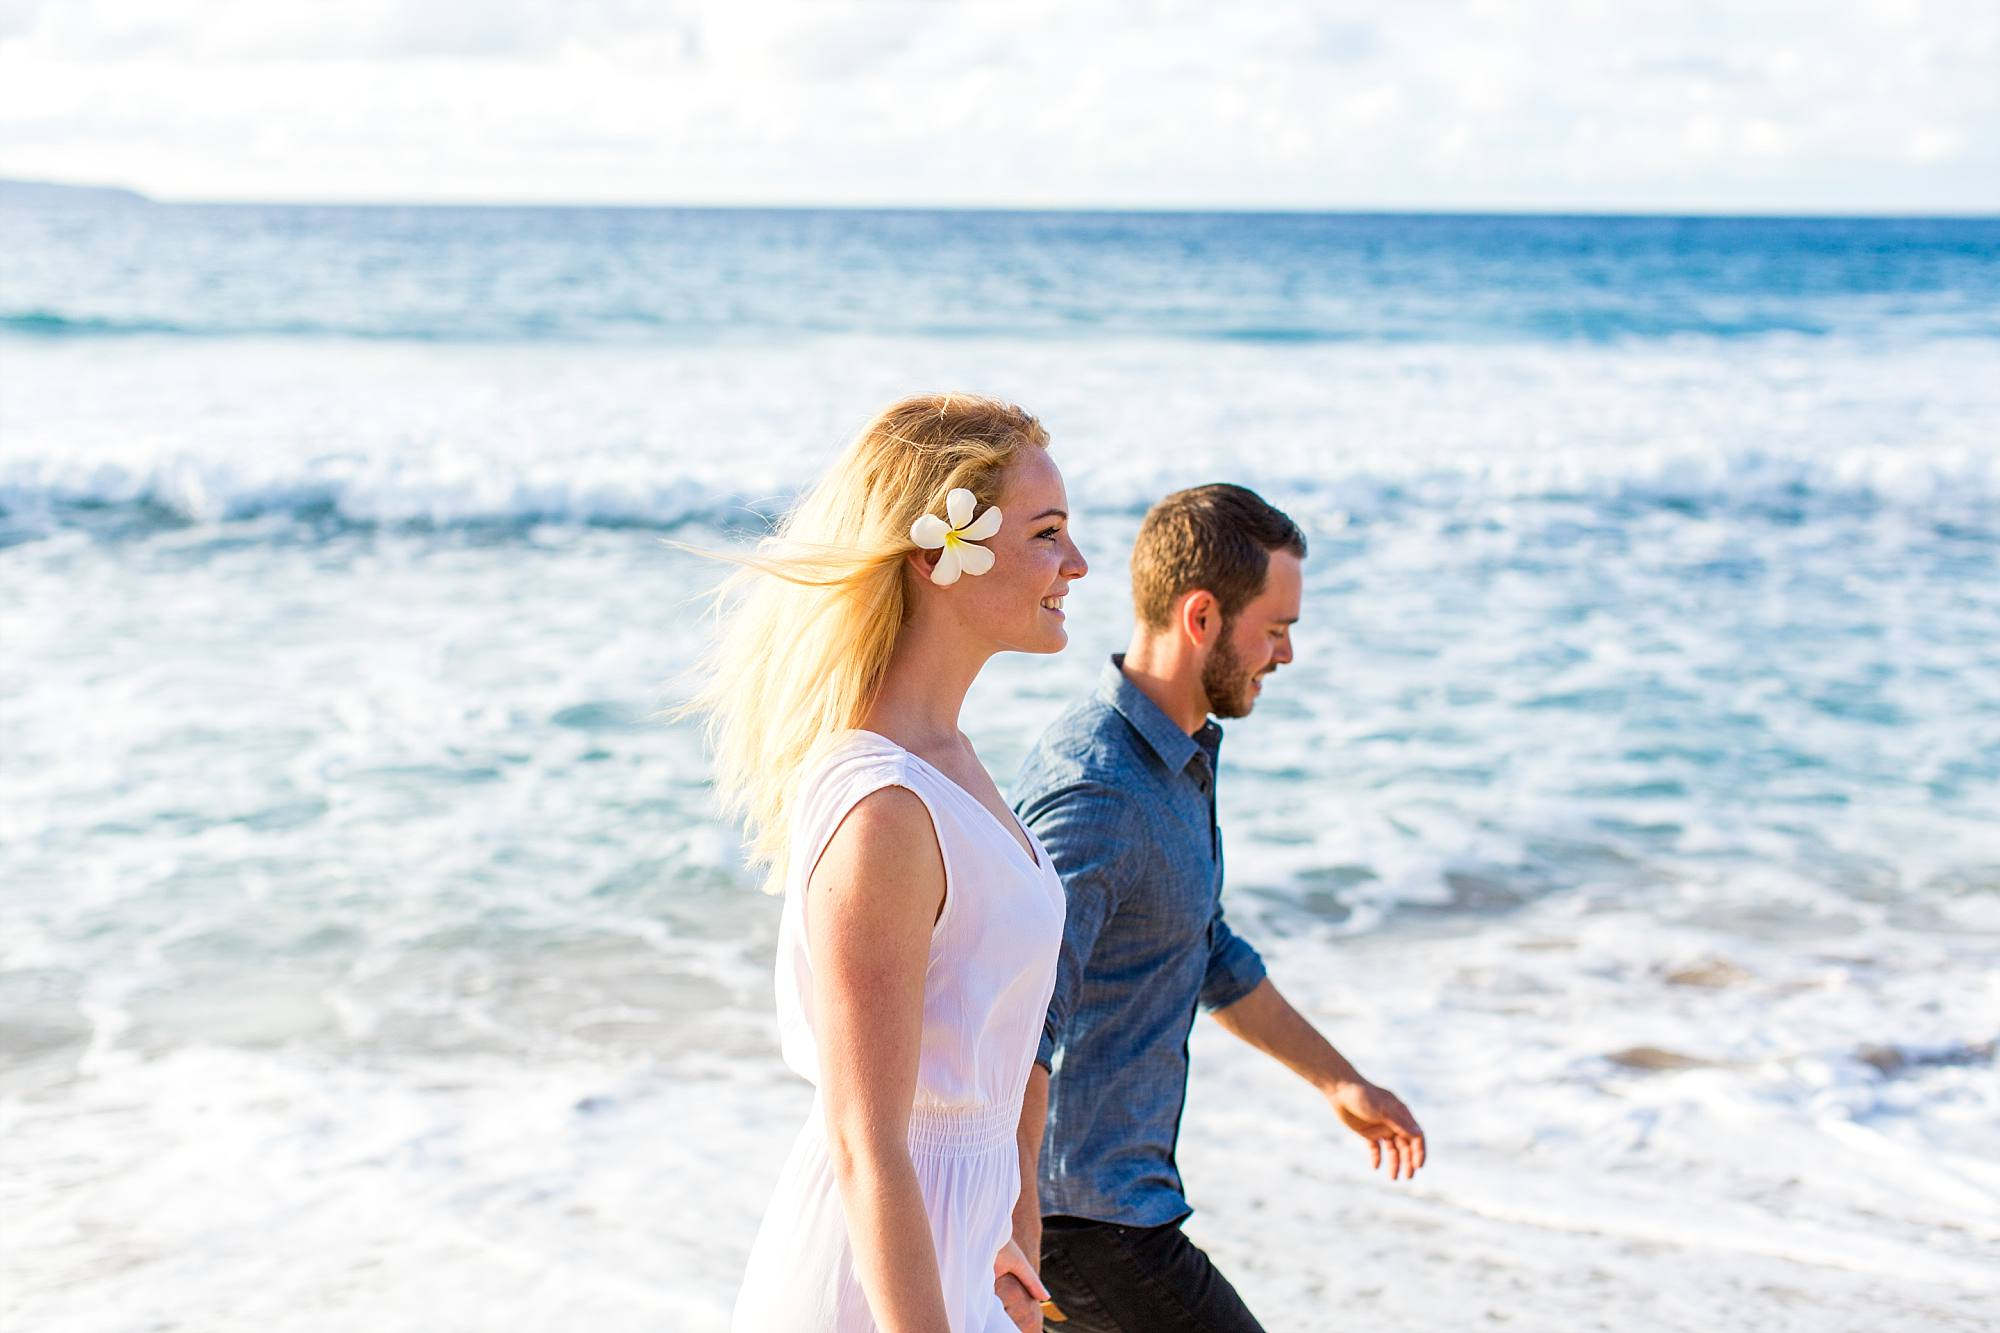 couple in love walking down beach together, side shot